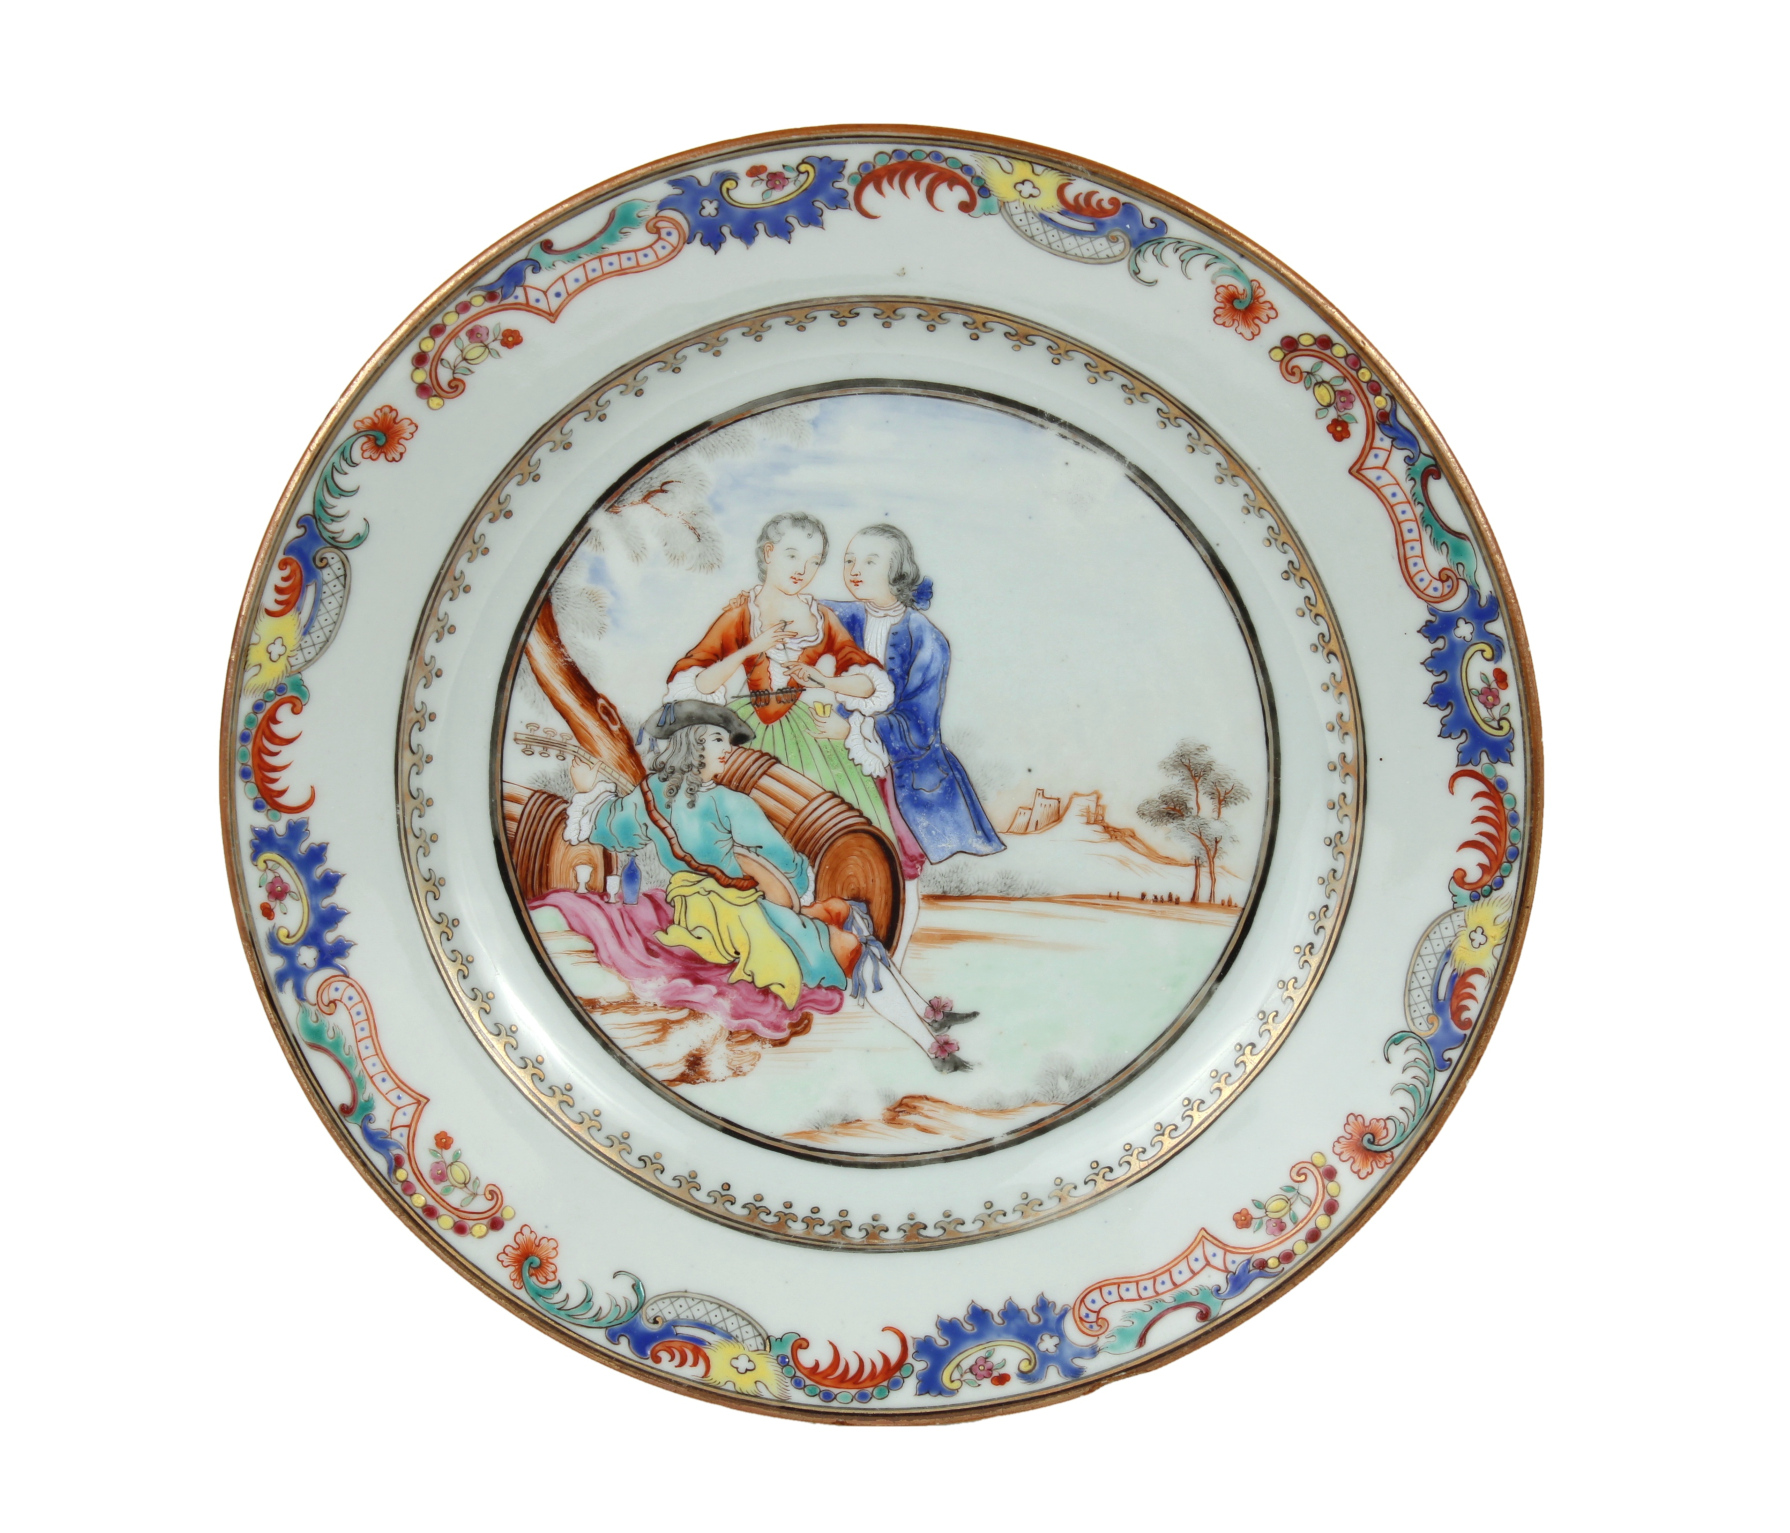 Chinese Export Plate Decorated with a Music Party, c. 1745